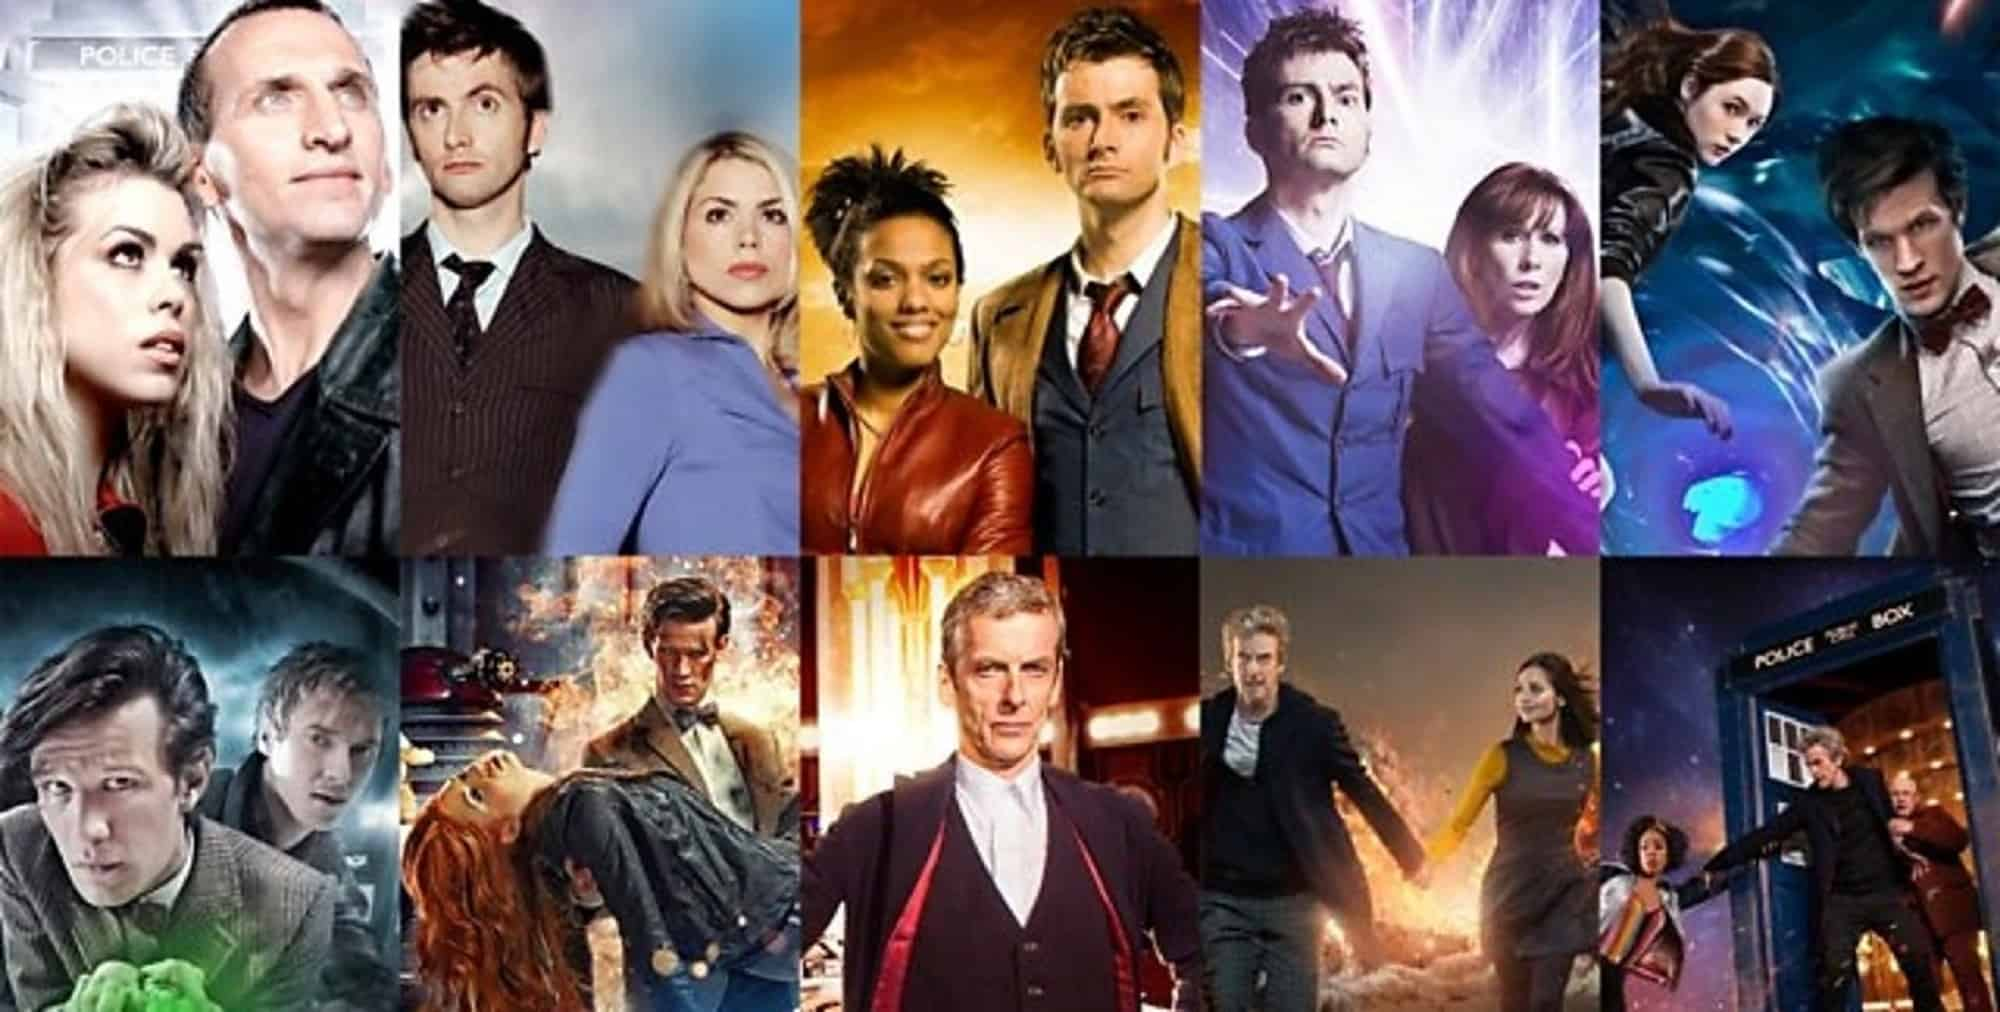 Best Modern Doctor Who Companions Featured Image via BBC